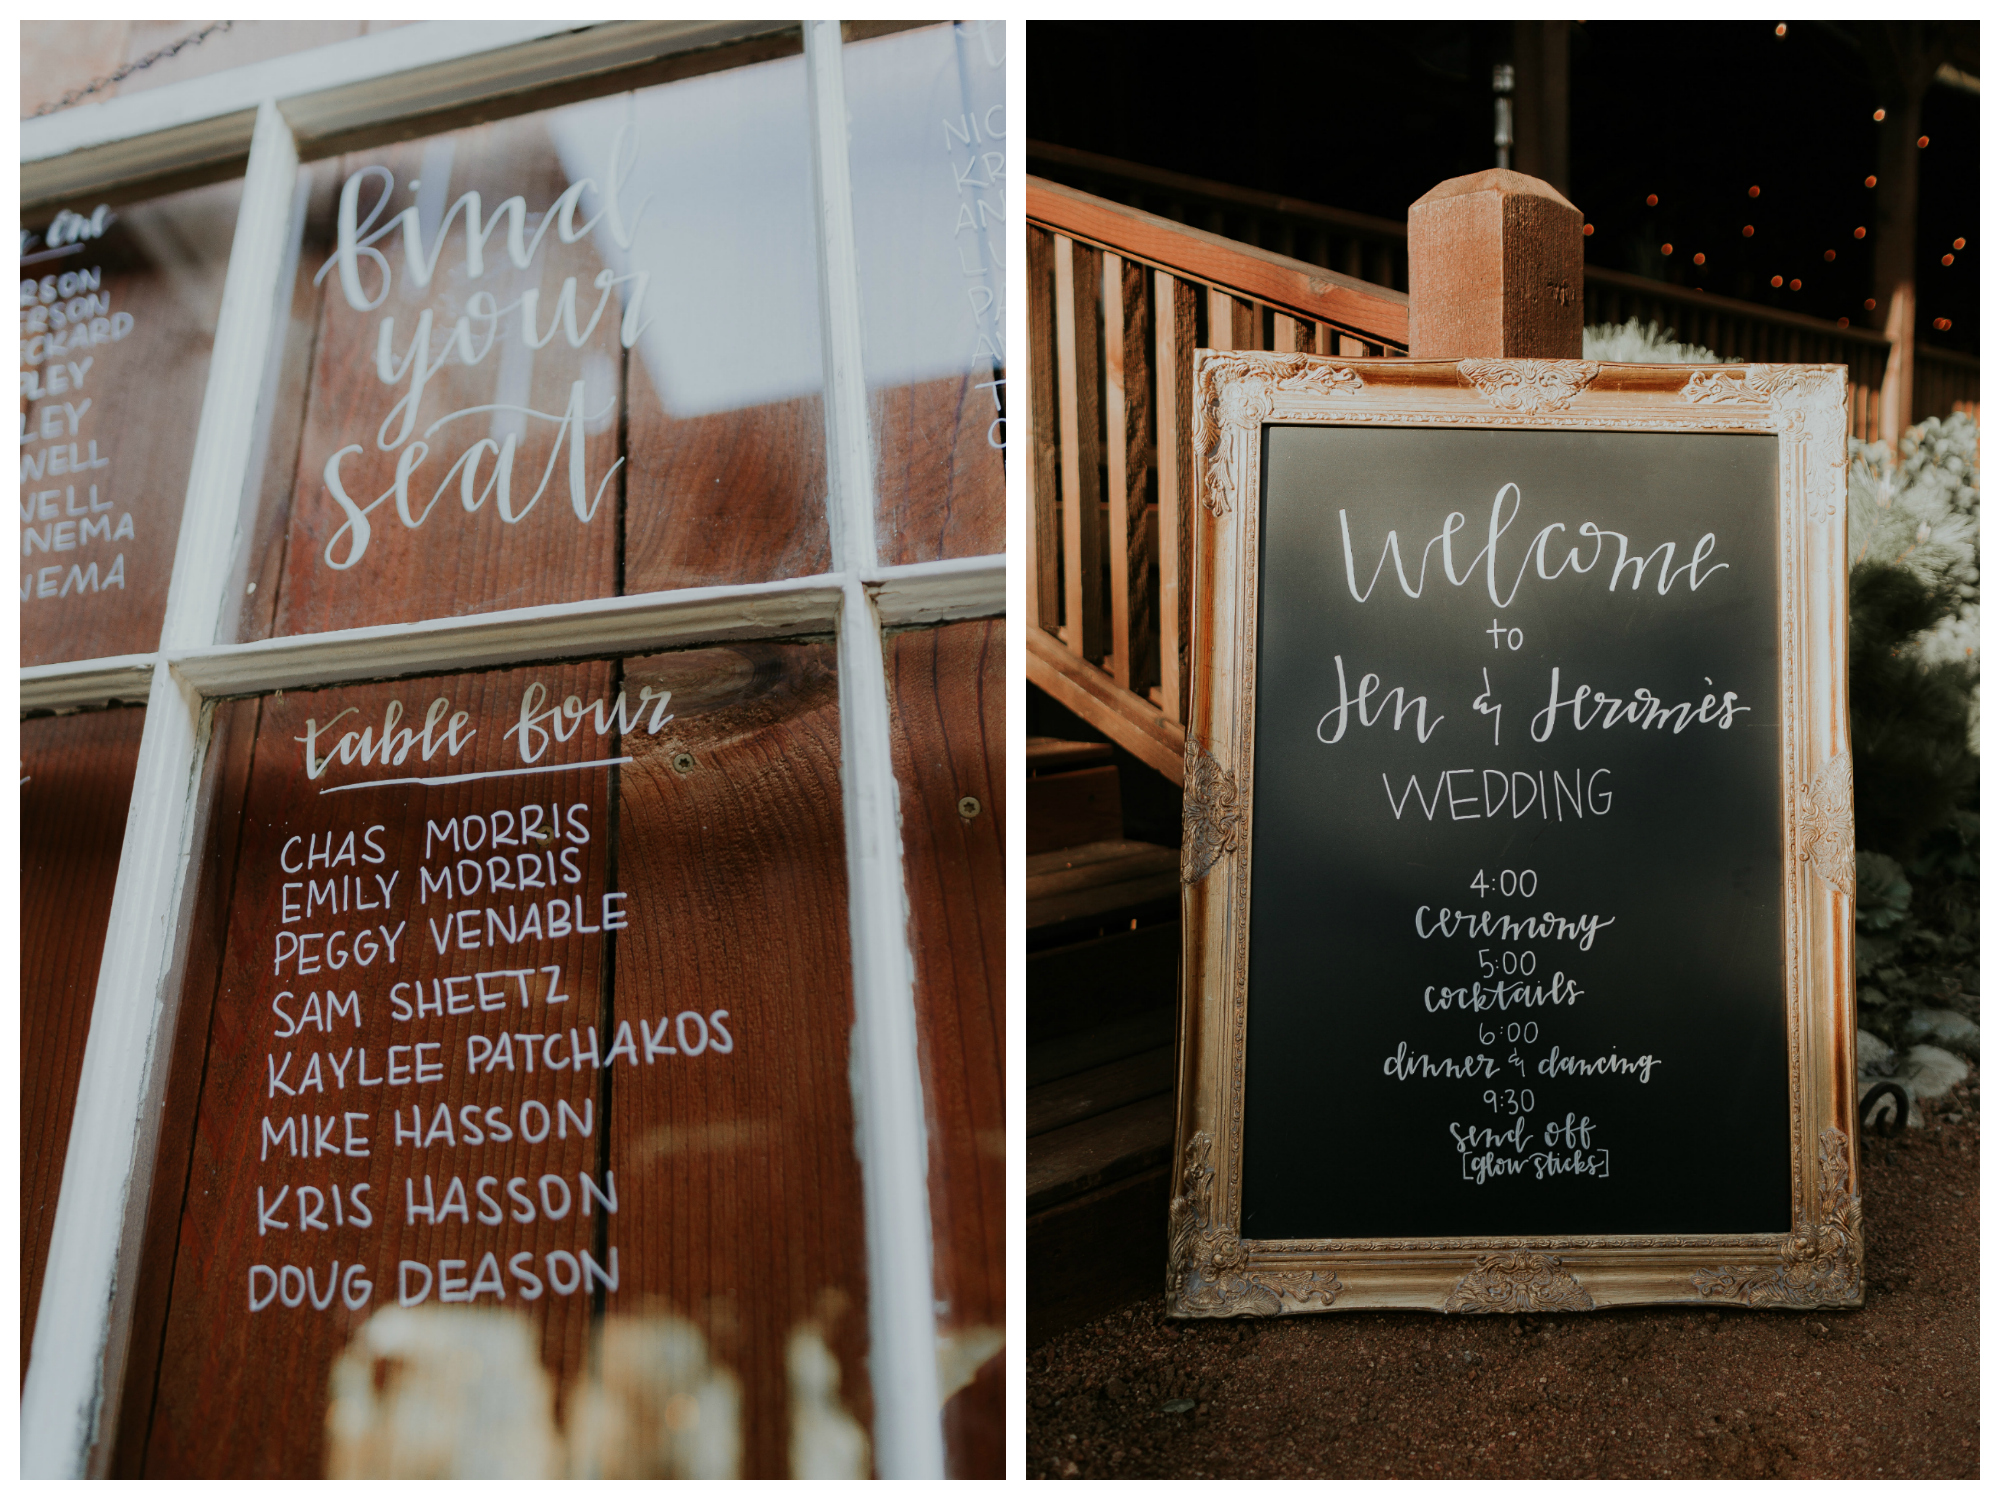 wedding seating chart and program